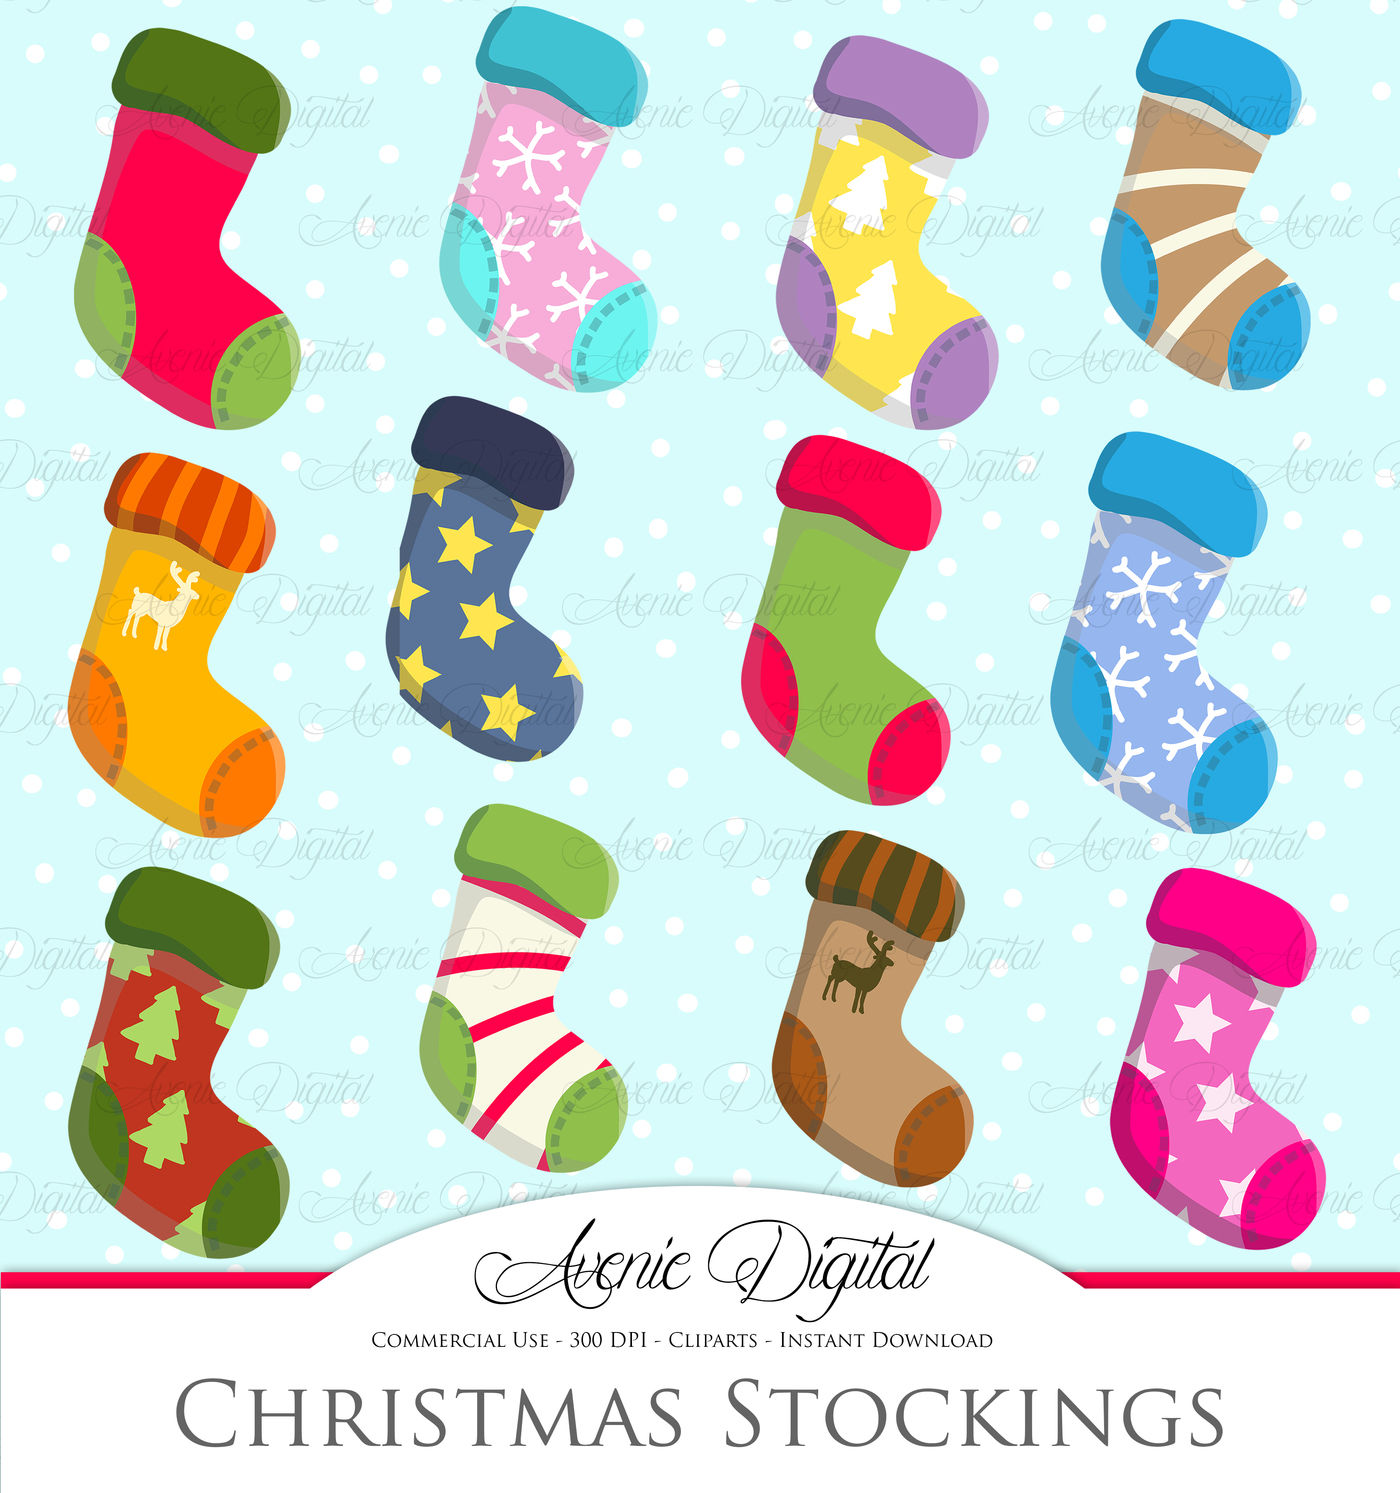 Christmas Stocking Clipart.Christmas Stocking Clipart Vector By Aveniedigital